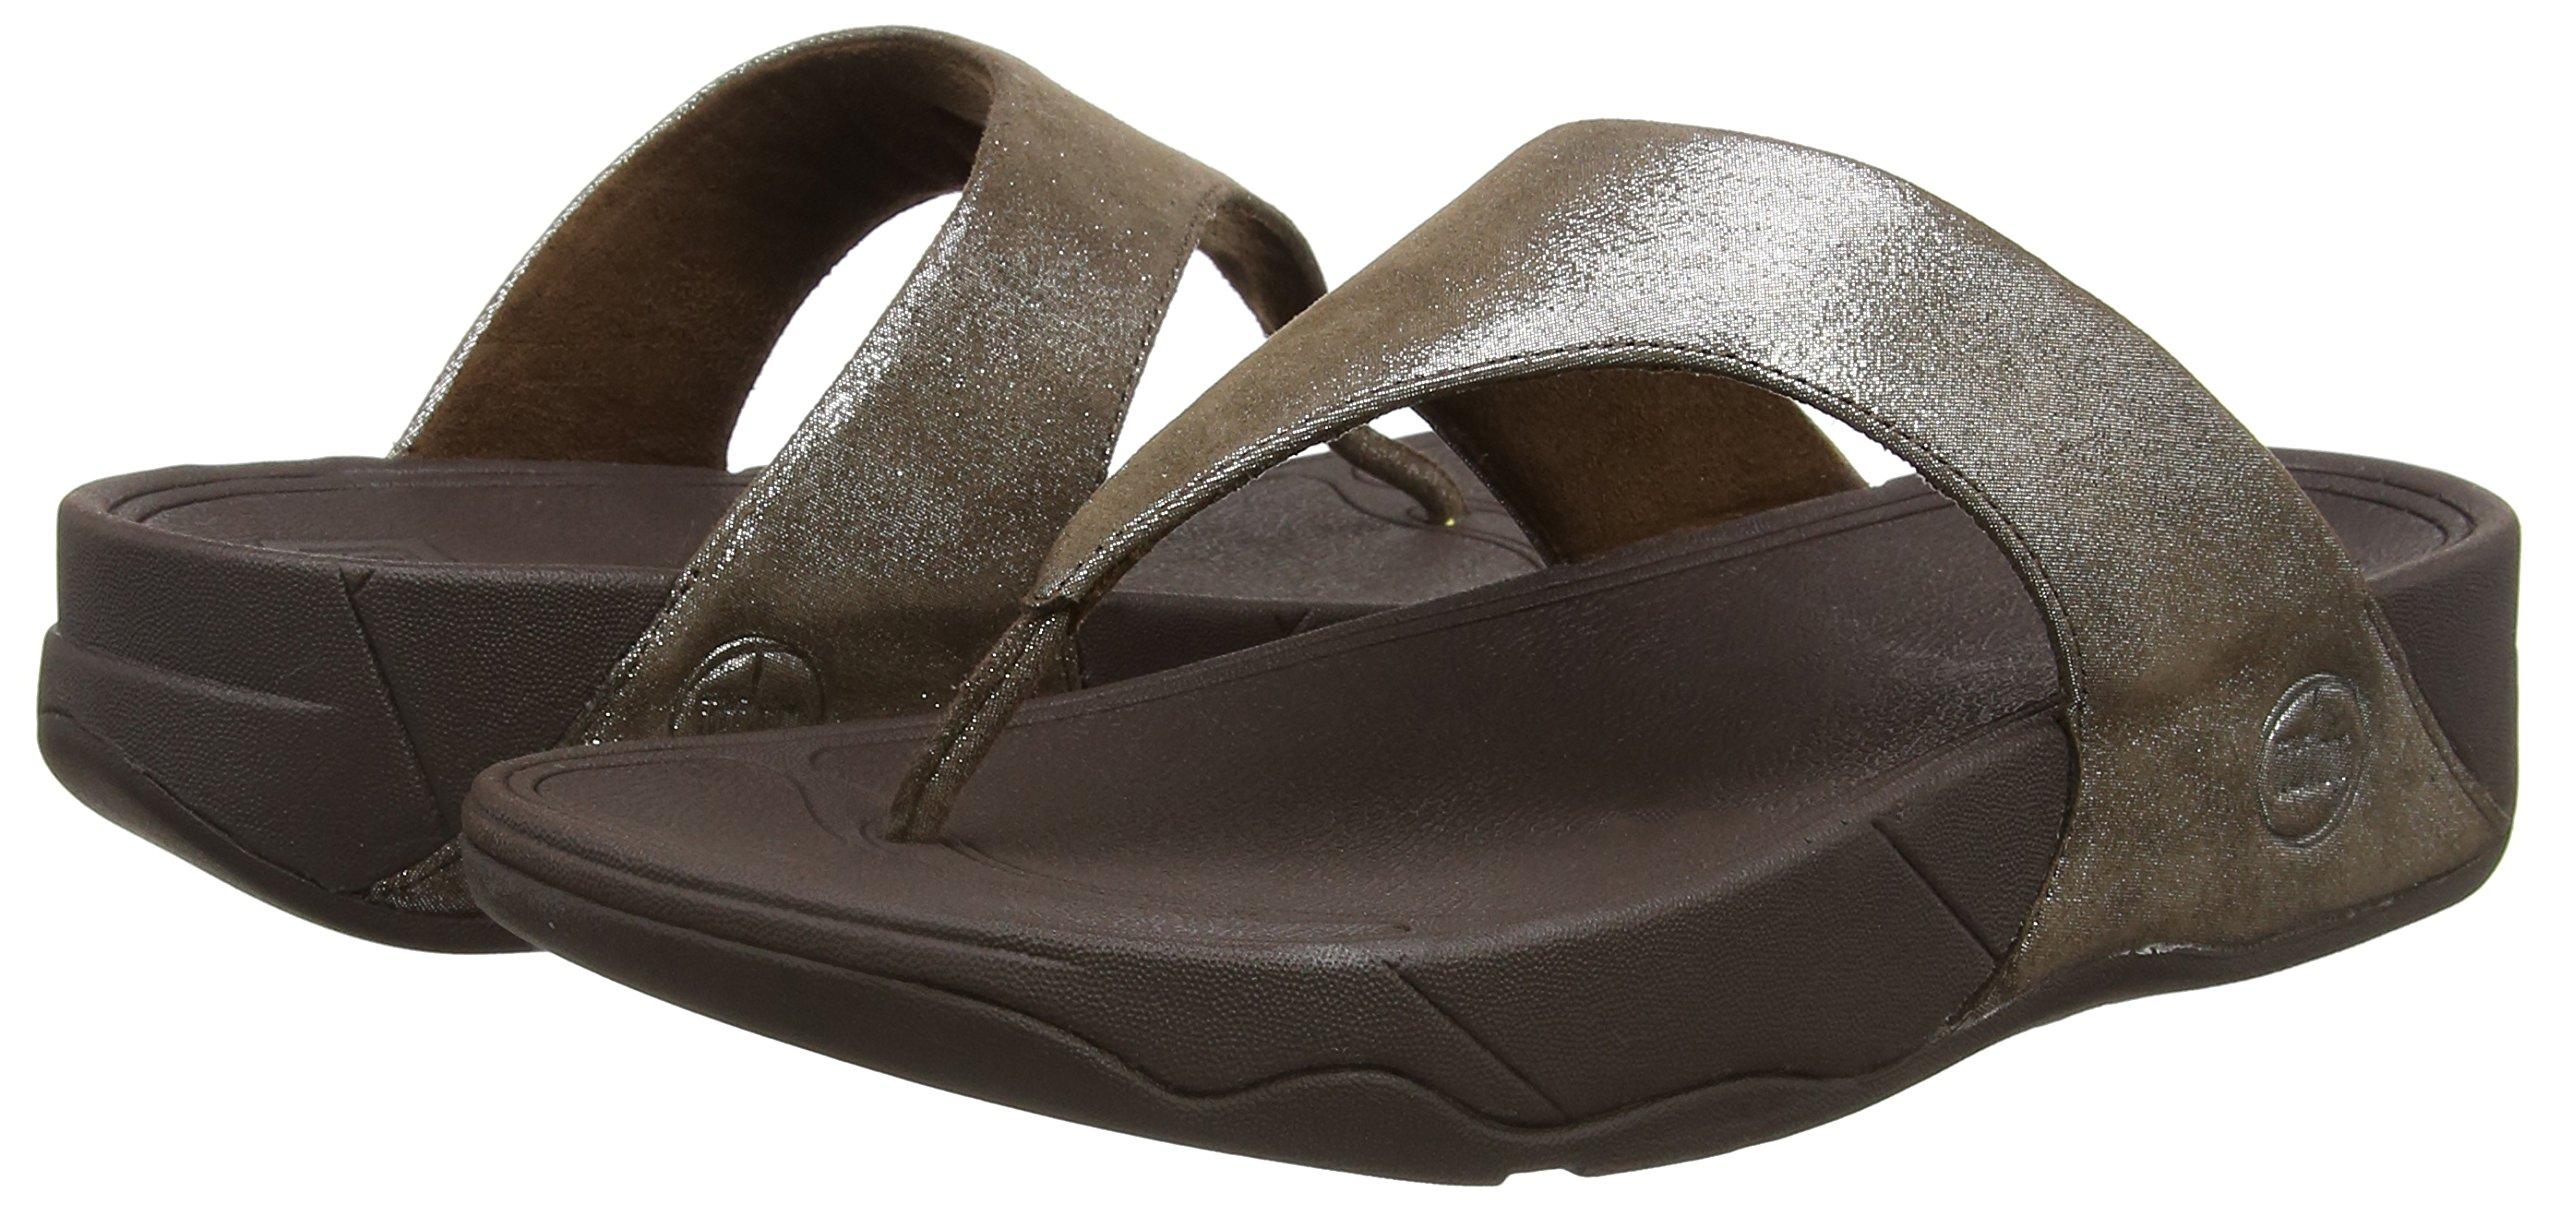 FitFlop Women's Lulu Shimmersuede Flip Flop, Bronze, 9 M US by FitFlop (Image #6)